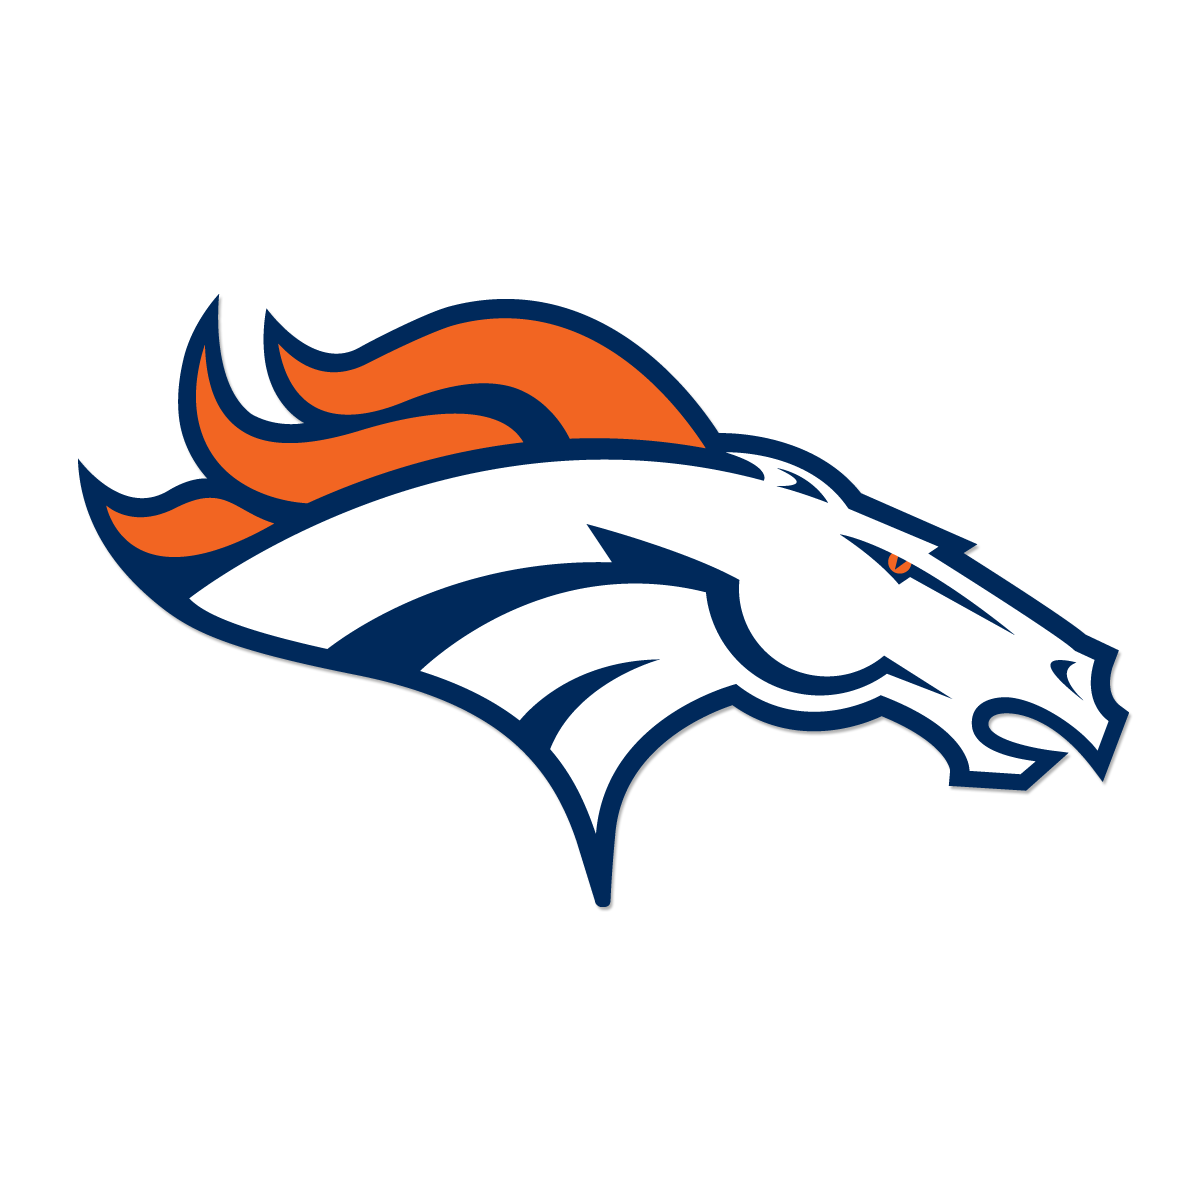 Nfl team logos 2015 png. Broncos head to with